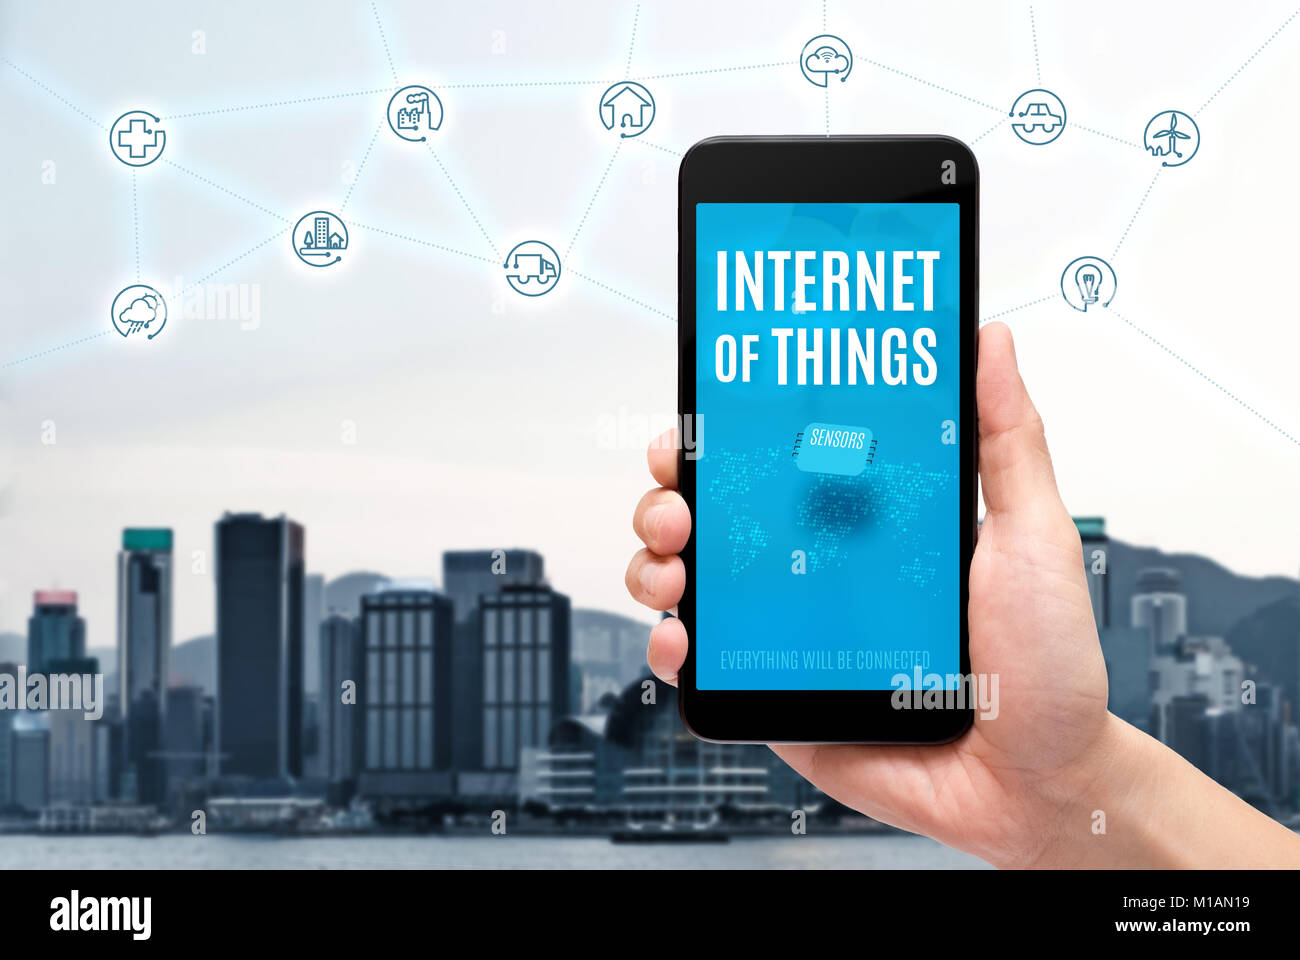 Hand holding mobile with Internet of things (iot) word on screen with icon feature glowing in air with blur city - Stock Image